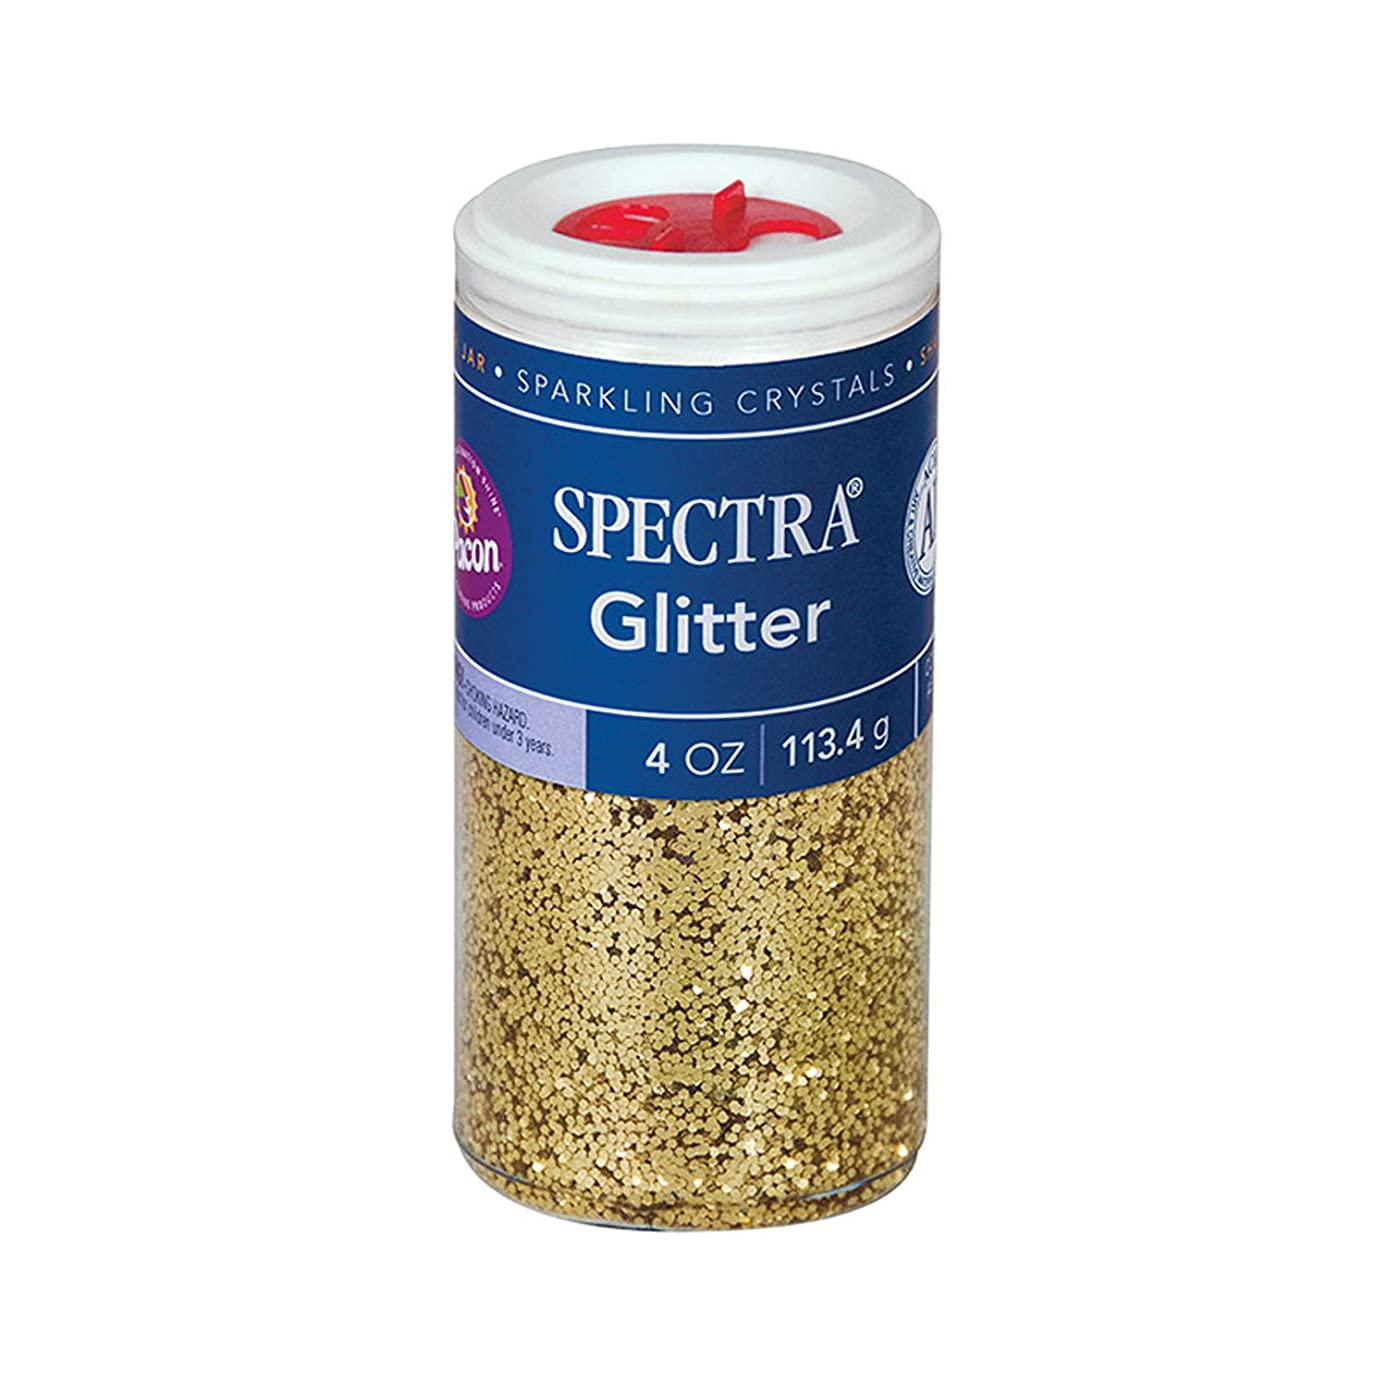 Pacon Spectra Glitter Sparkling Crystals, Gold, 4-Ounce Jar (91680)